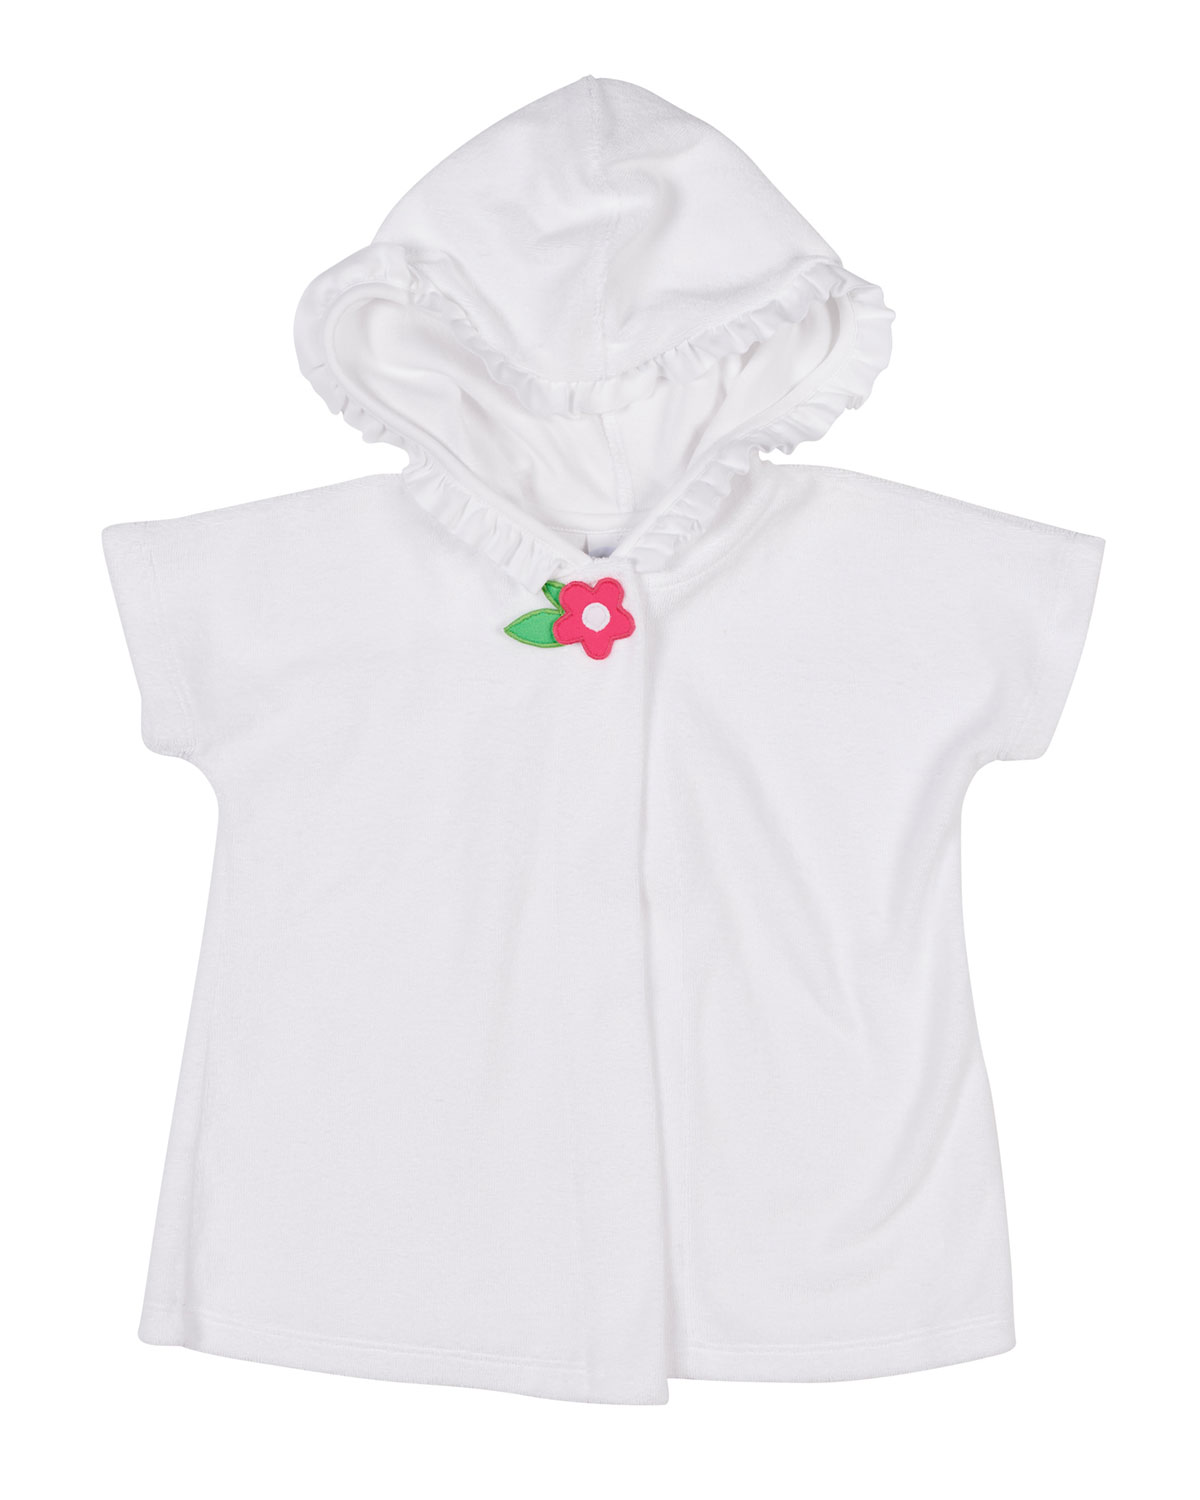 FLORENCE EISEMAN Knitted Terry Hooded Coverup, Size 2-4 in White